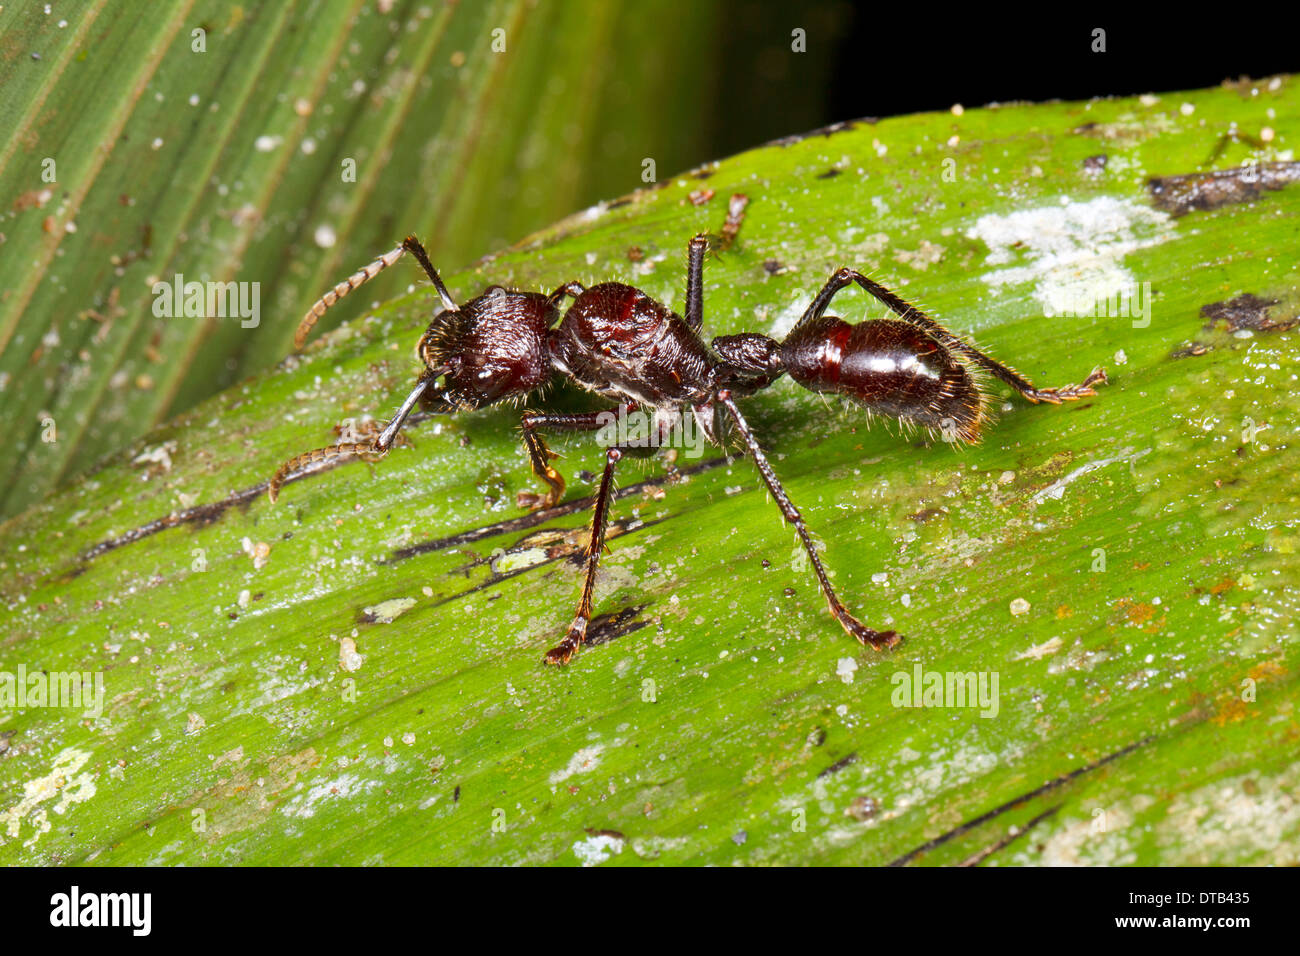 Bullet or Conga Ant (Paraponera Clavata) in the rainforest understory, Ecuador Stock Photo